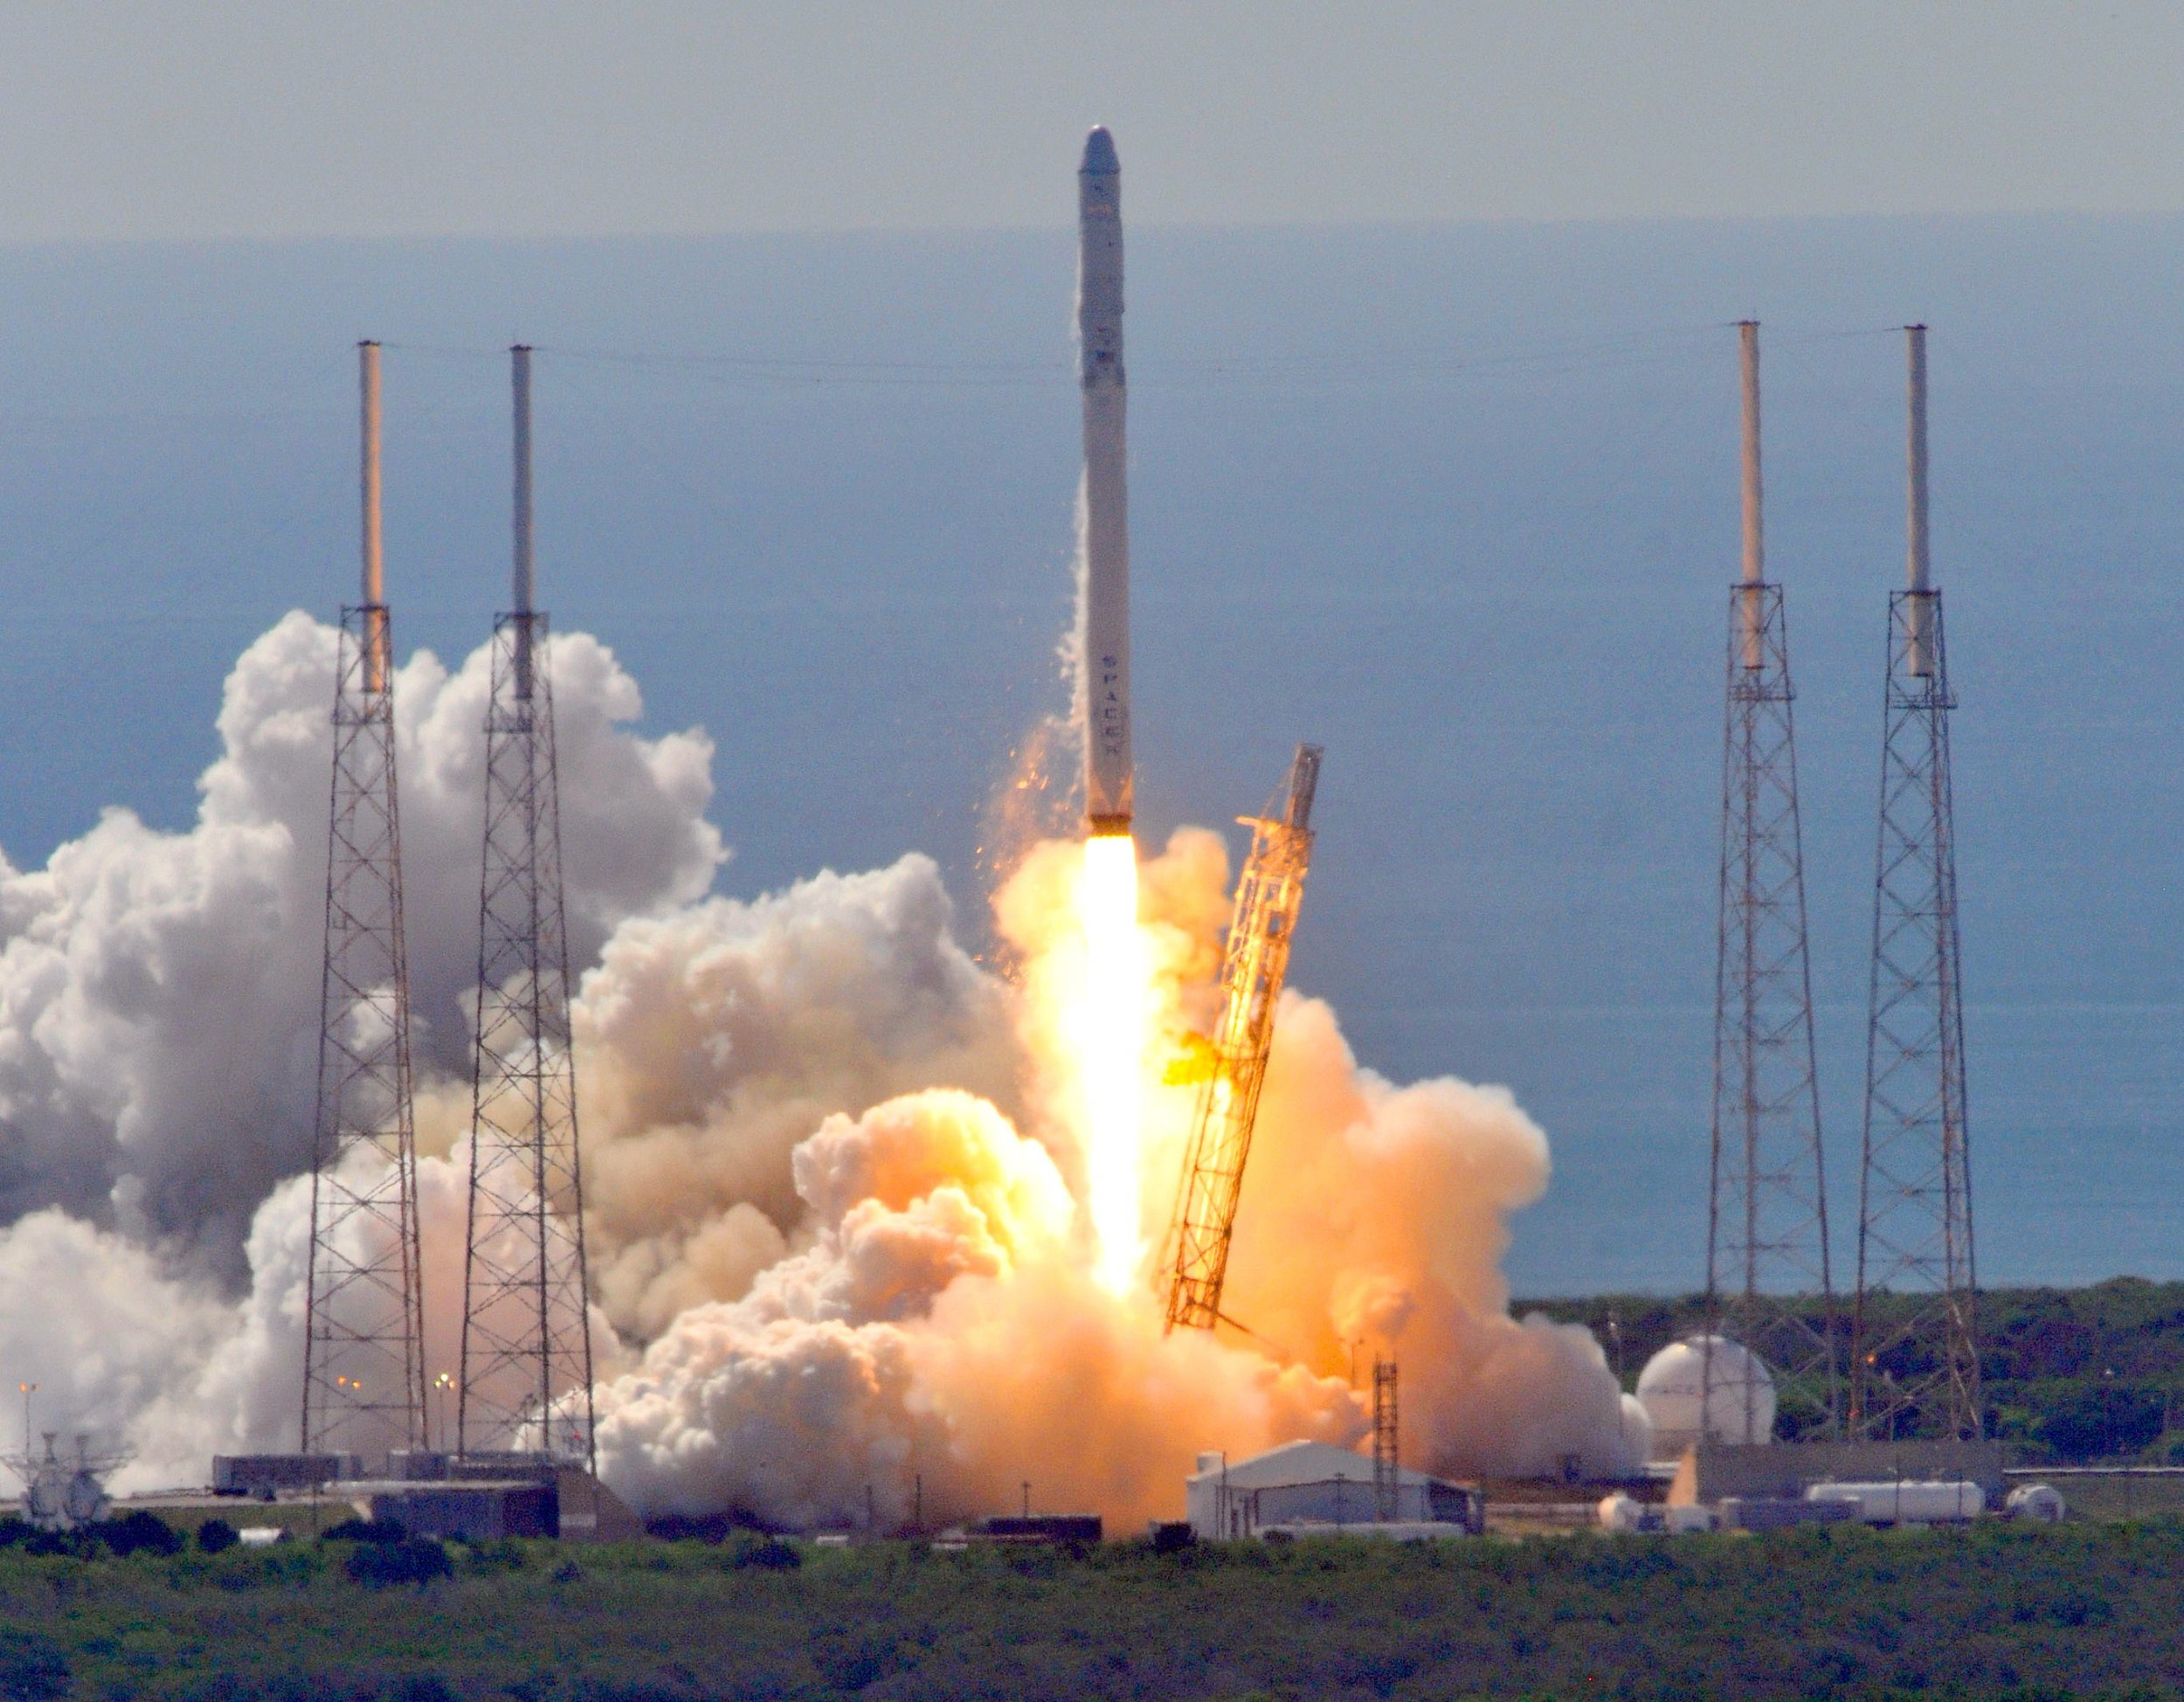 09_14_spacex_falcon9